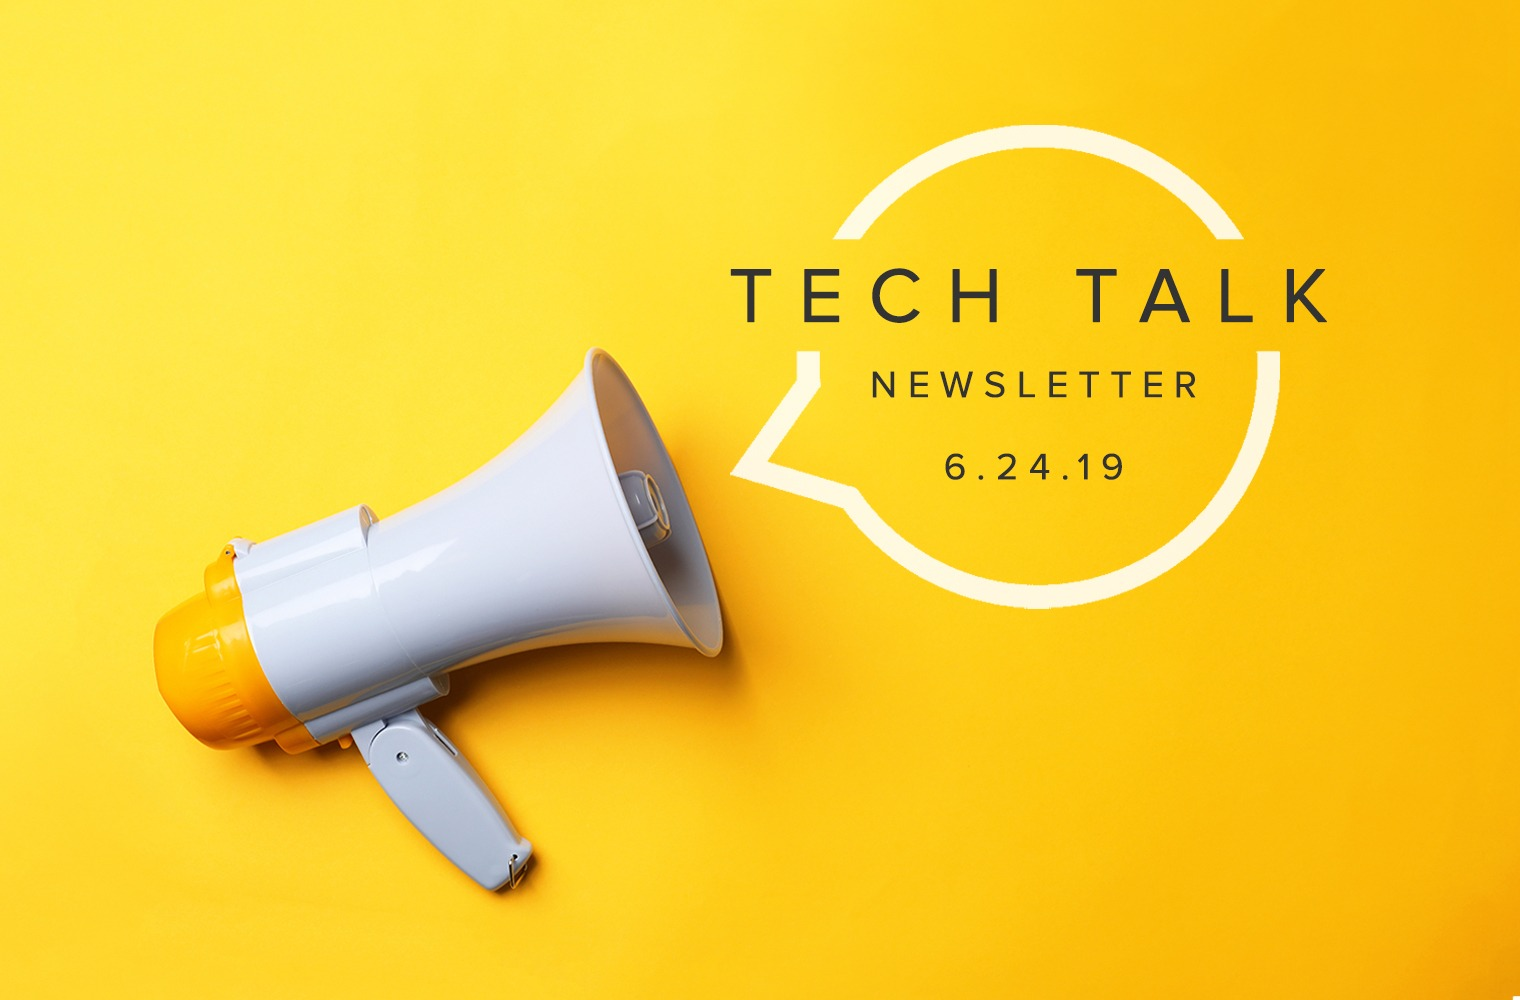 EMPIST Tech Talk Weekly Newsletter: Monday, June 24, 2019